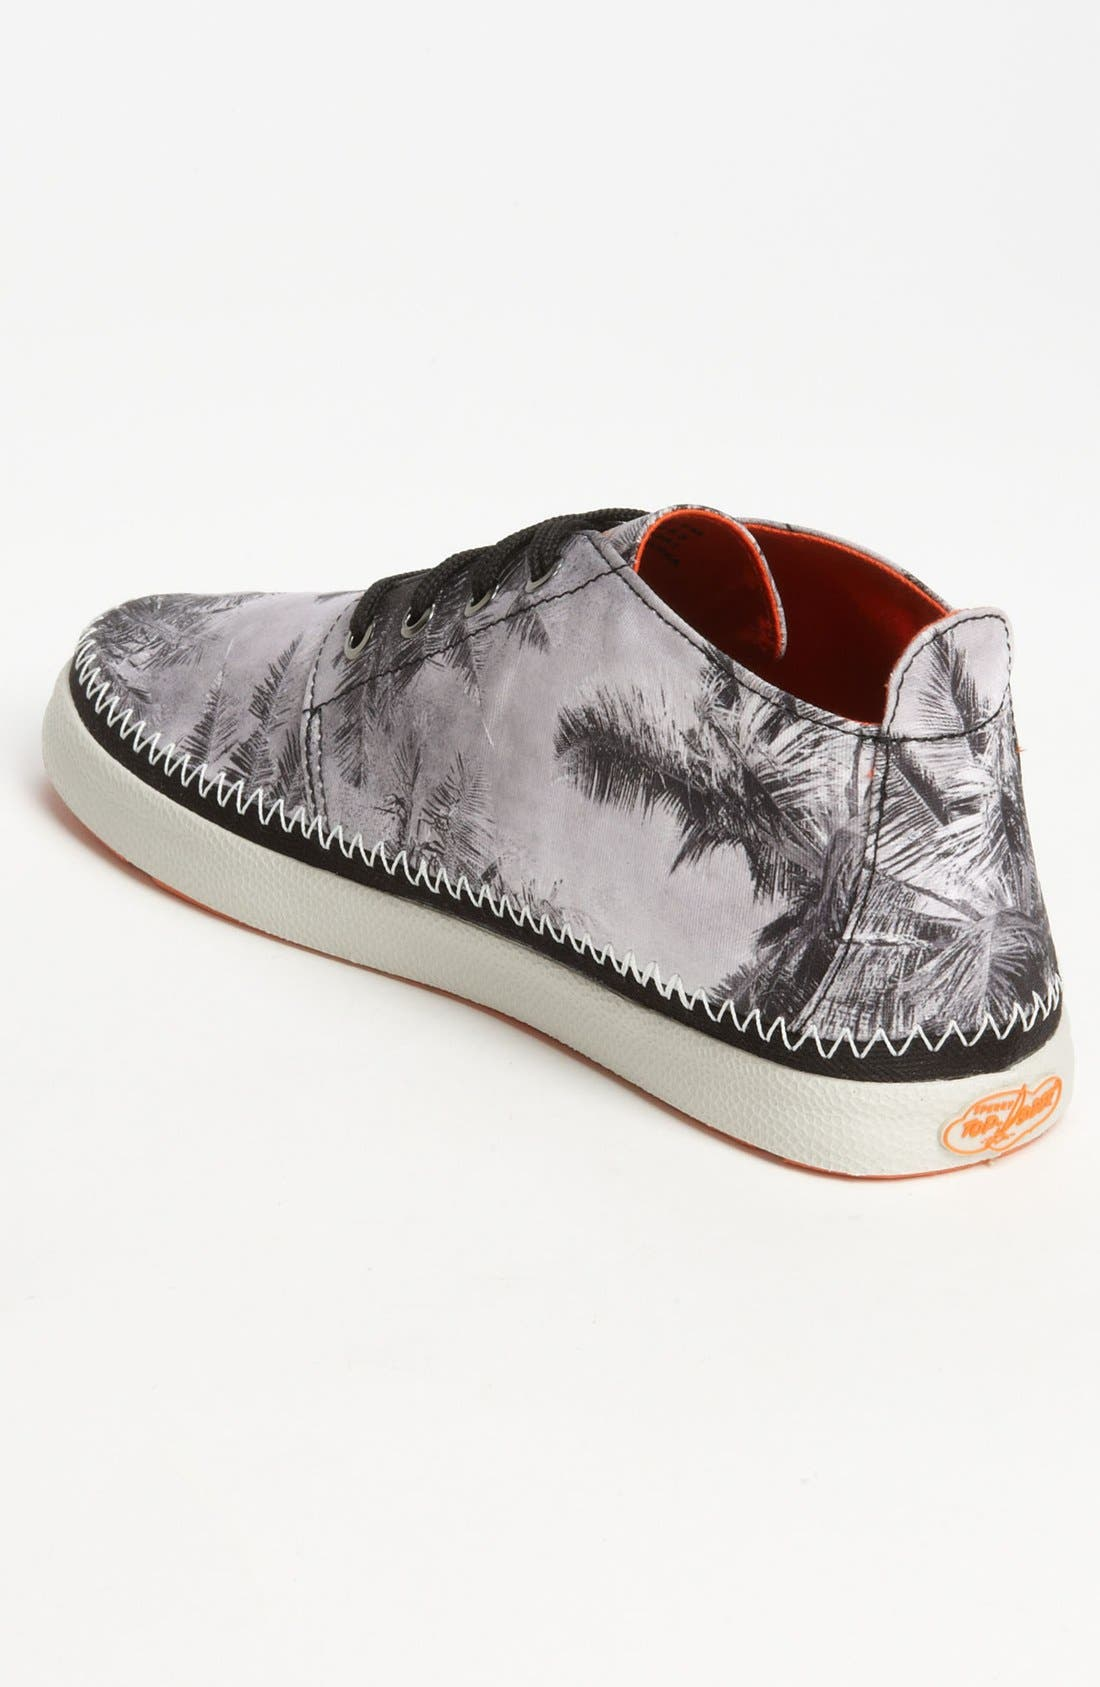 Top-Sider<sup>®</sup> 'Drifter' Chukka Boot,                             Alternate thumbnail 2, color,                             Black/ White Print